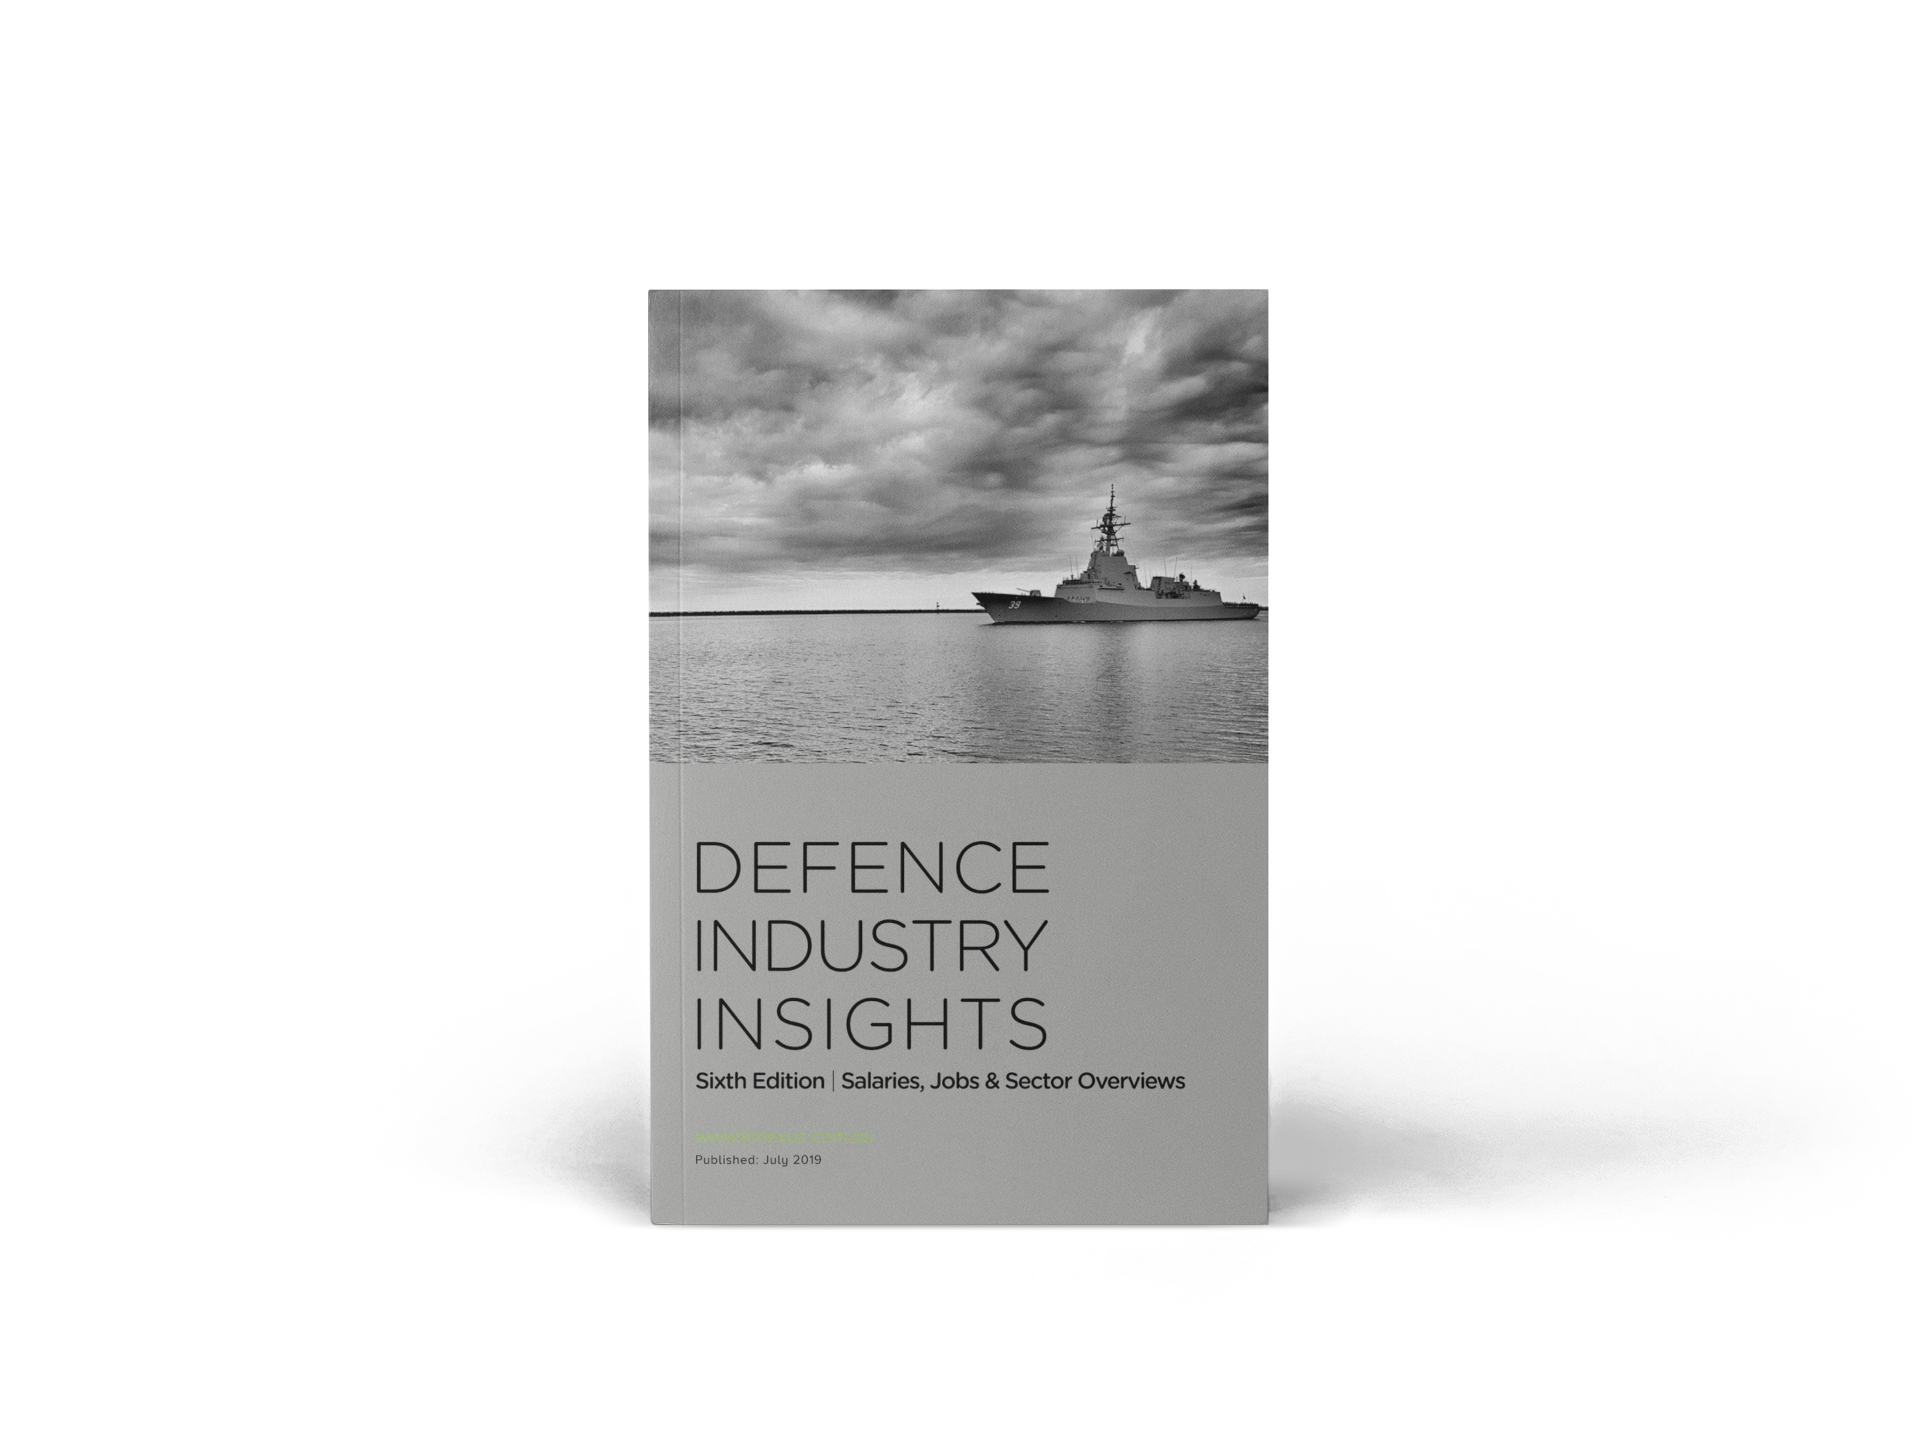 Defence Industry Insights - 6th Edition